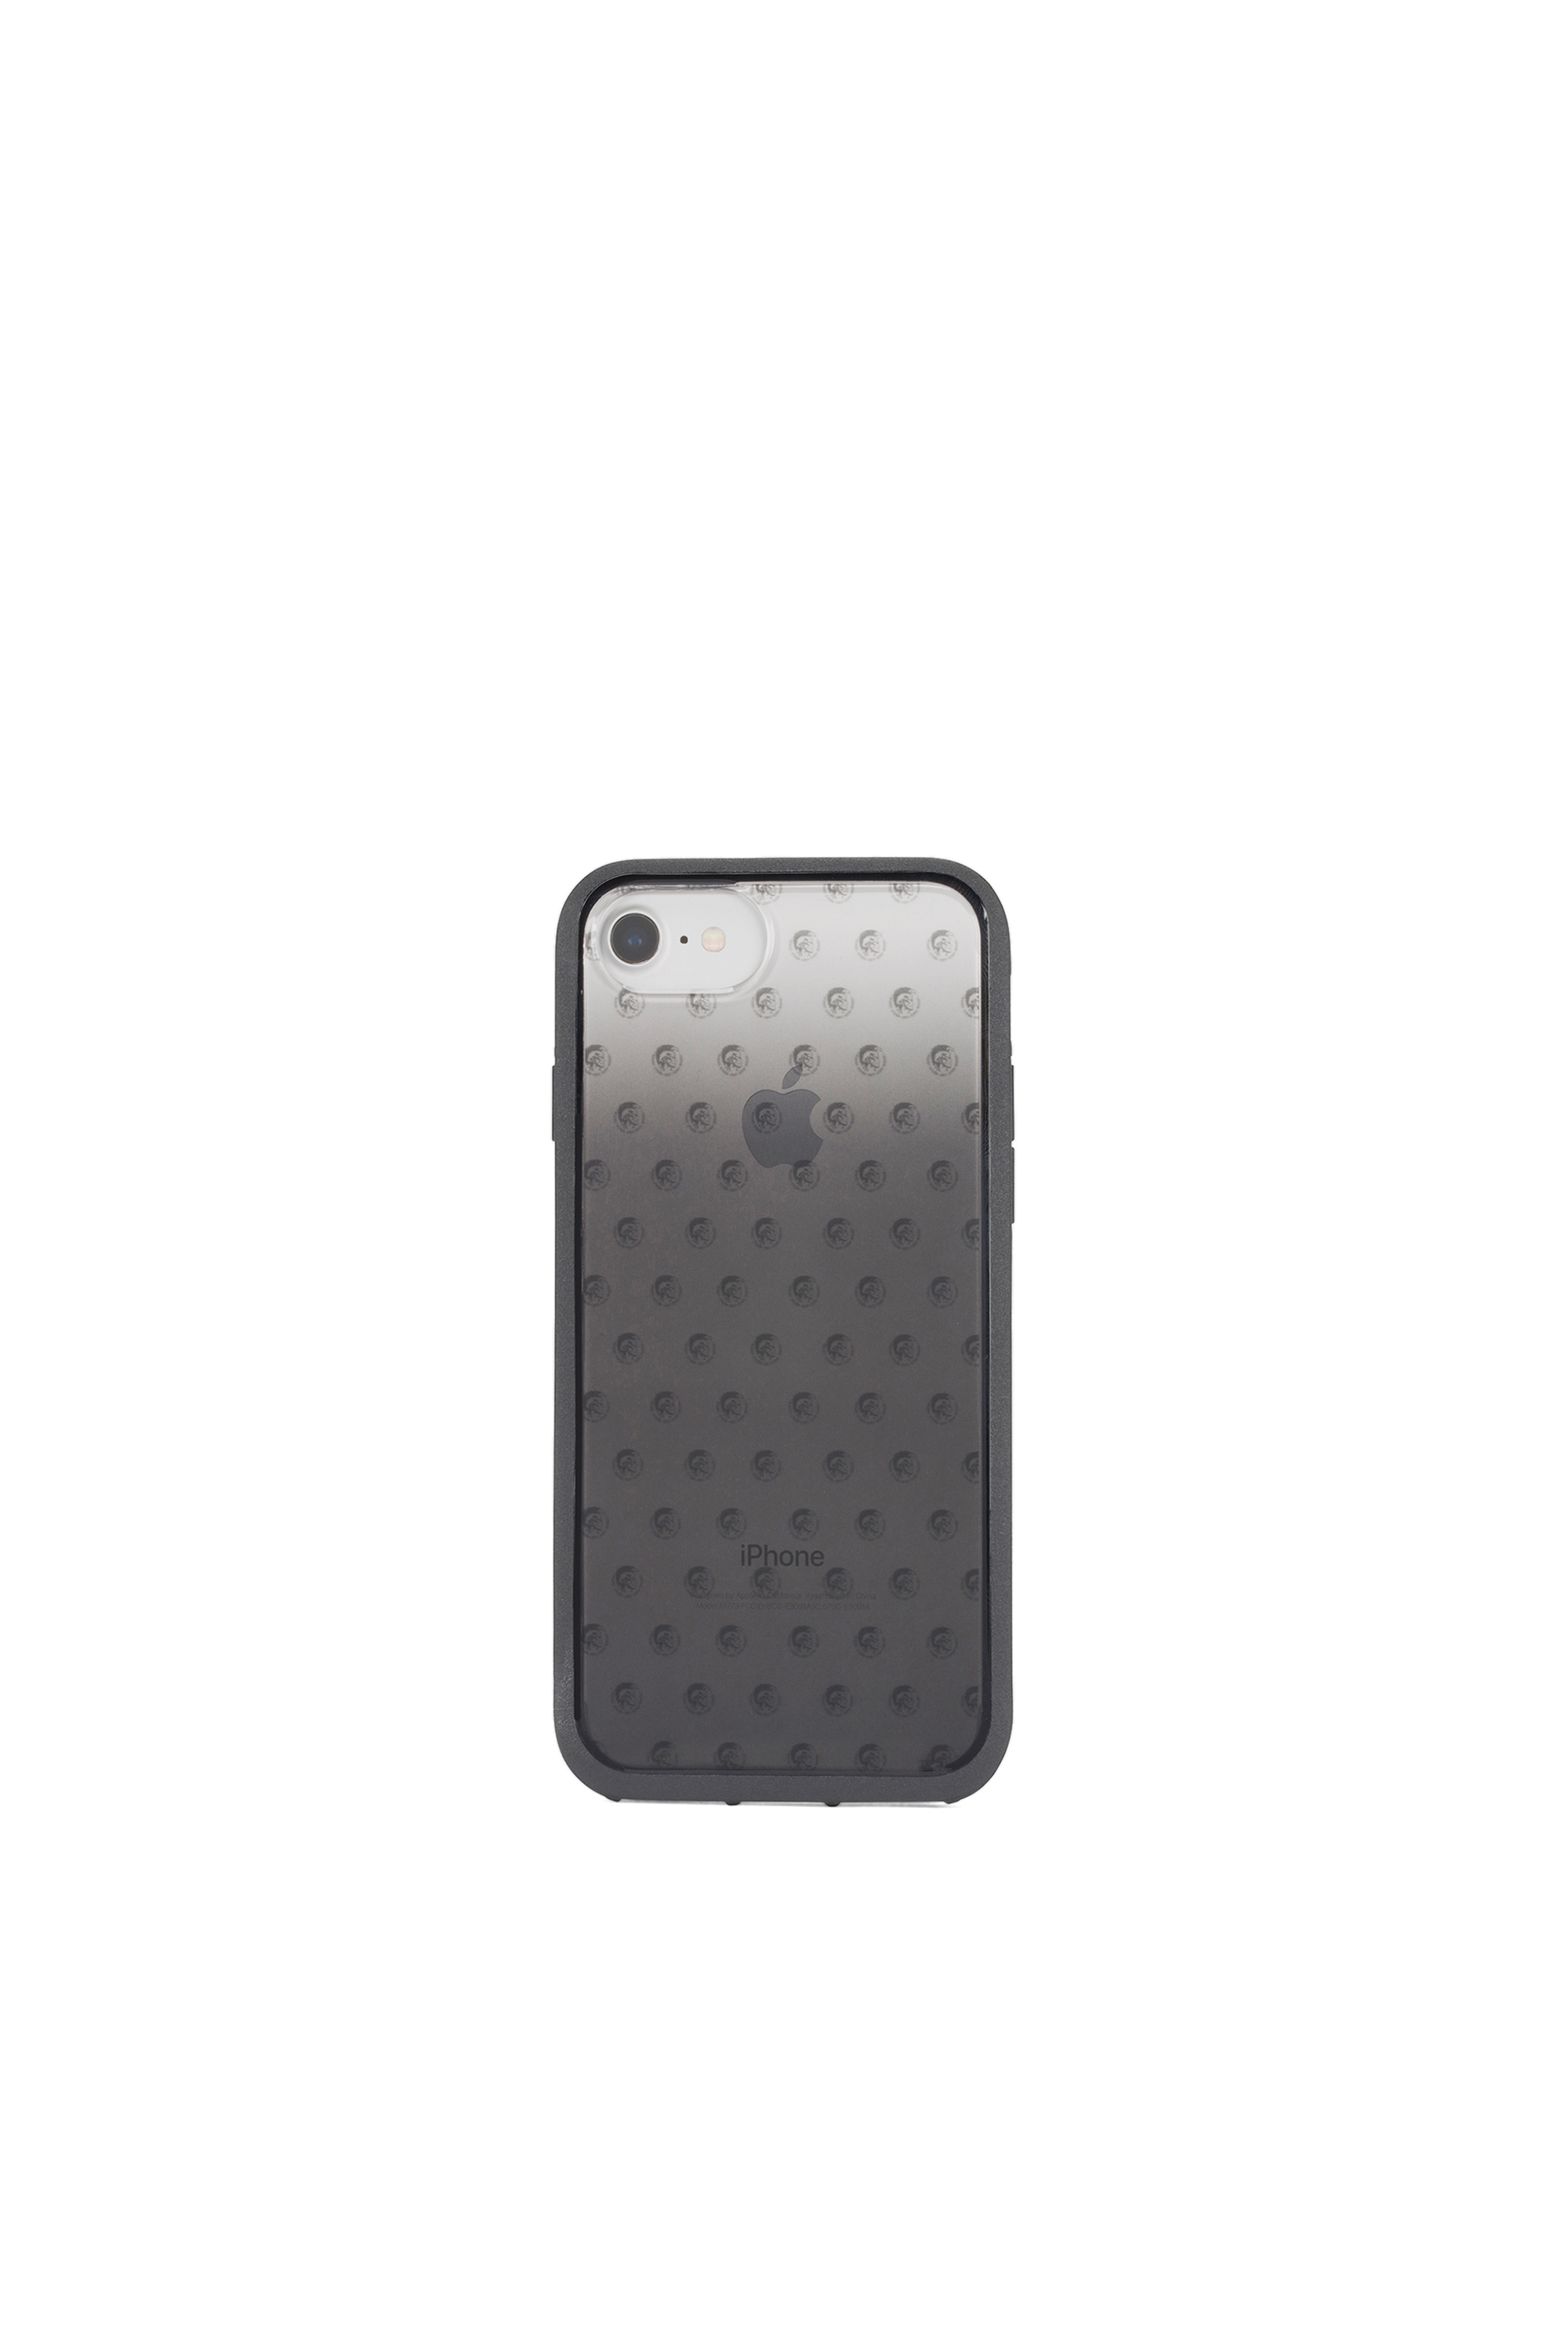 Diesel - MOHICAN HEAD DOTS BLACK IPHONE 8/7/6s/6 CASE,  - Coques - Image 4